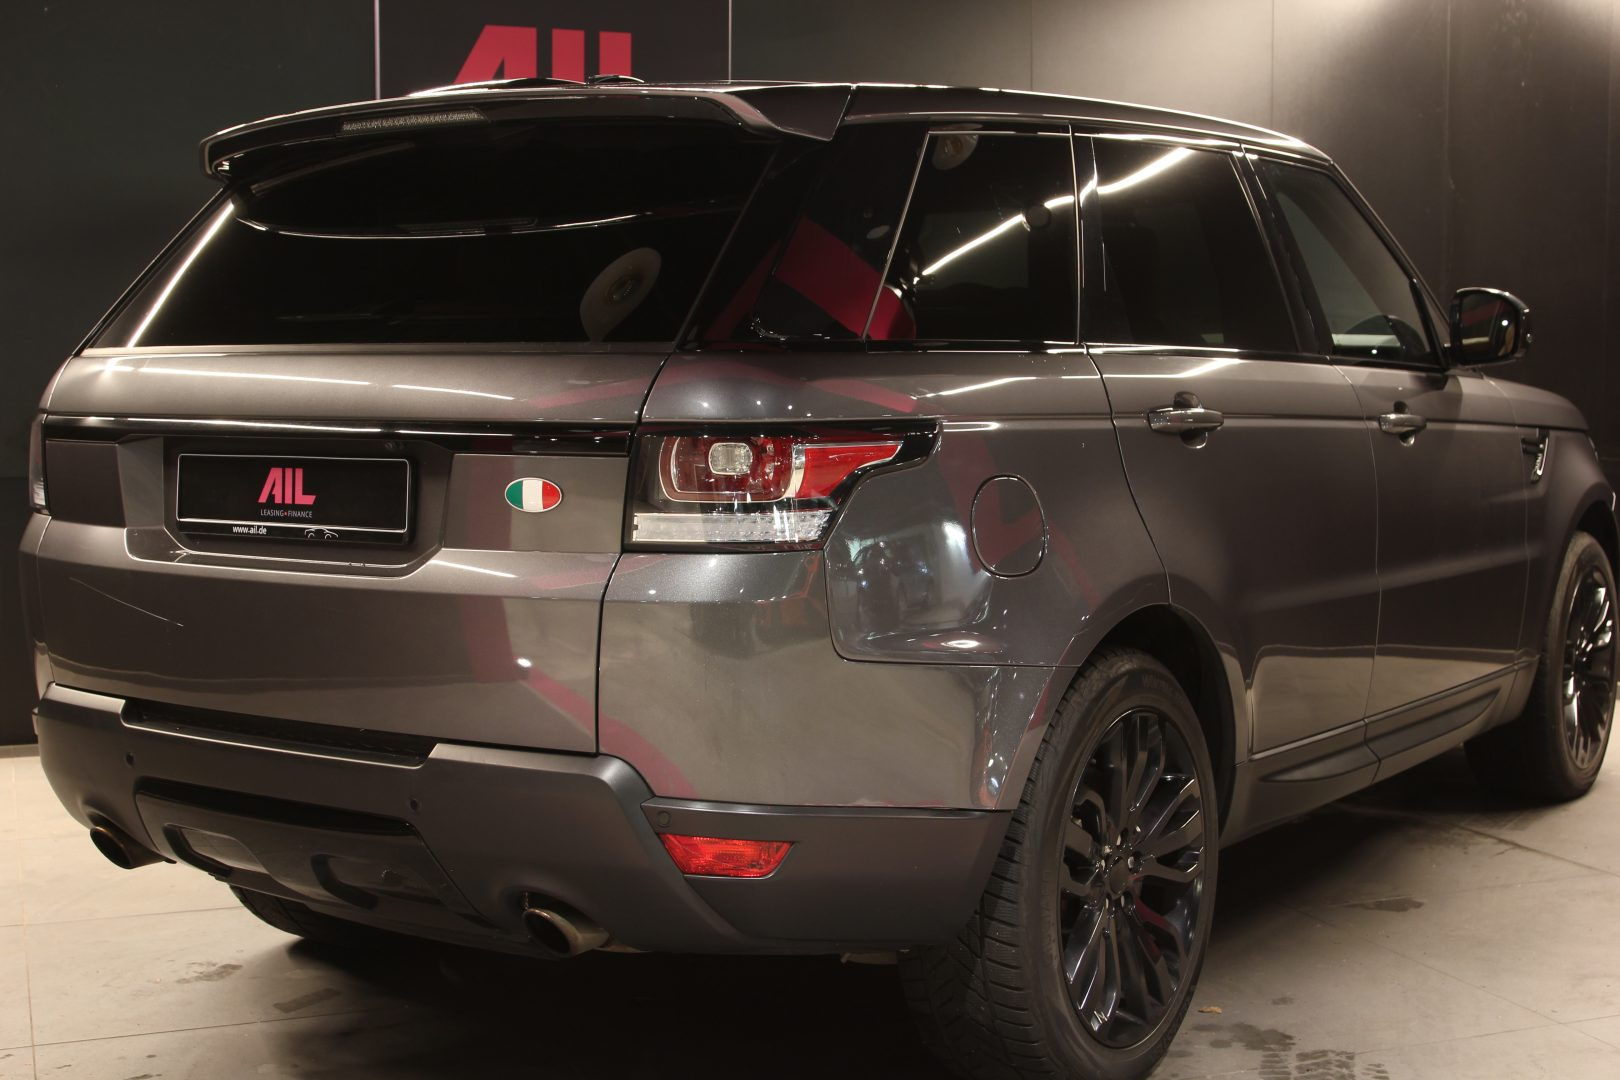 AIL Land Rover Range Rover Sport Autobiography  5.0 V8 15